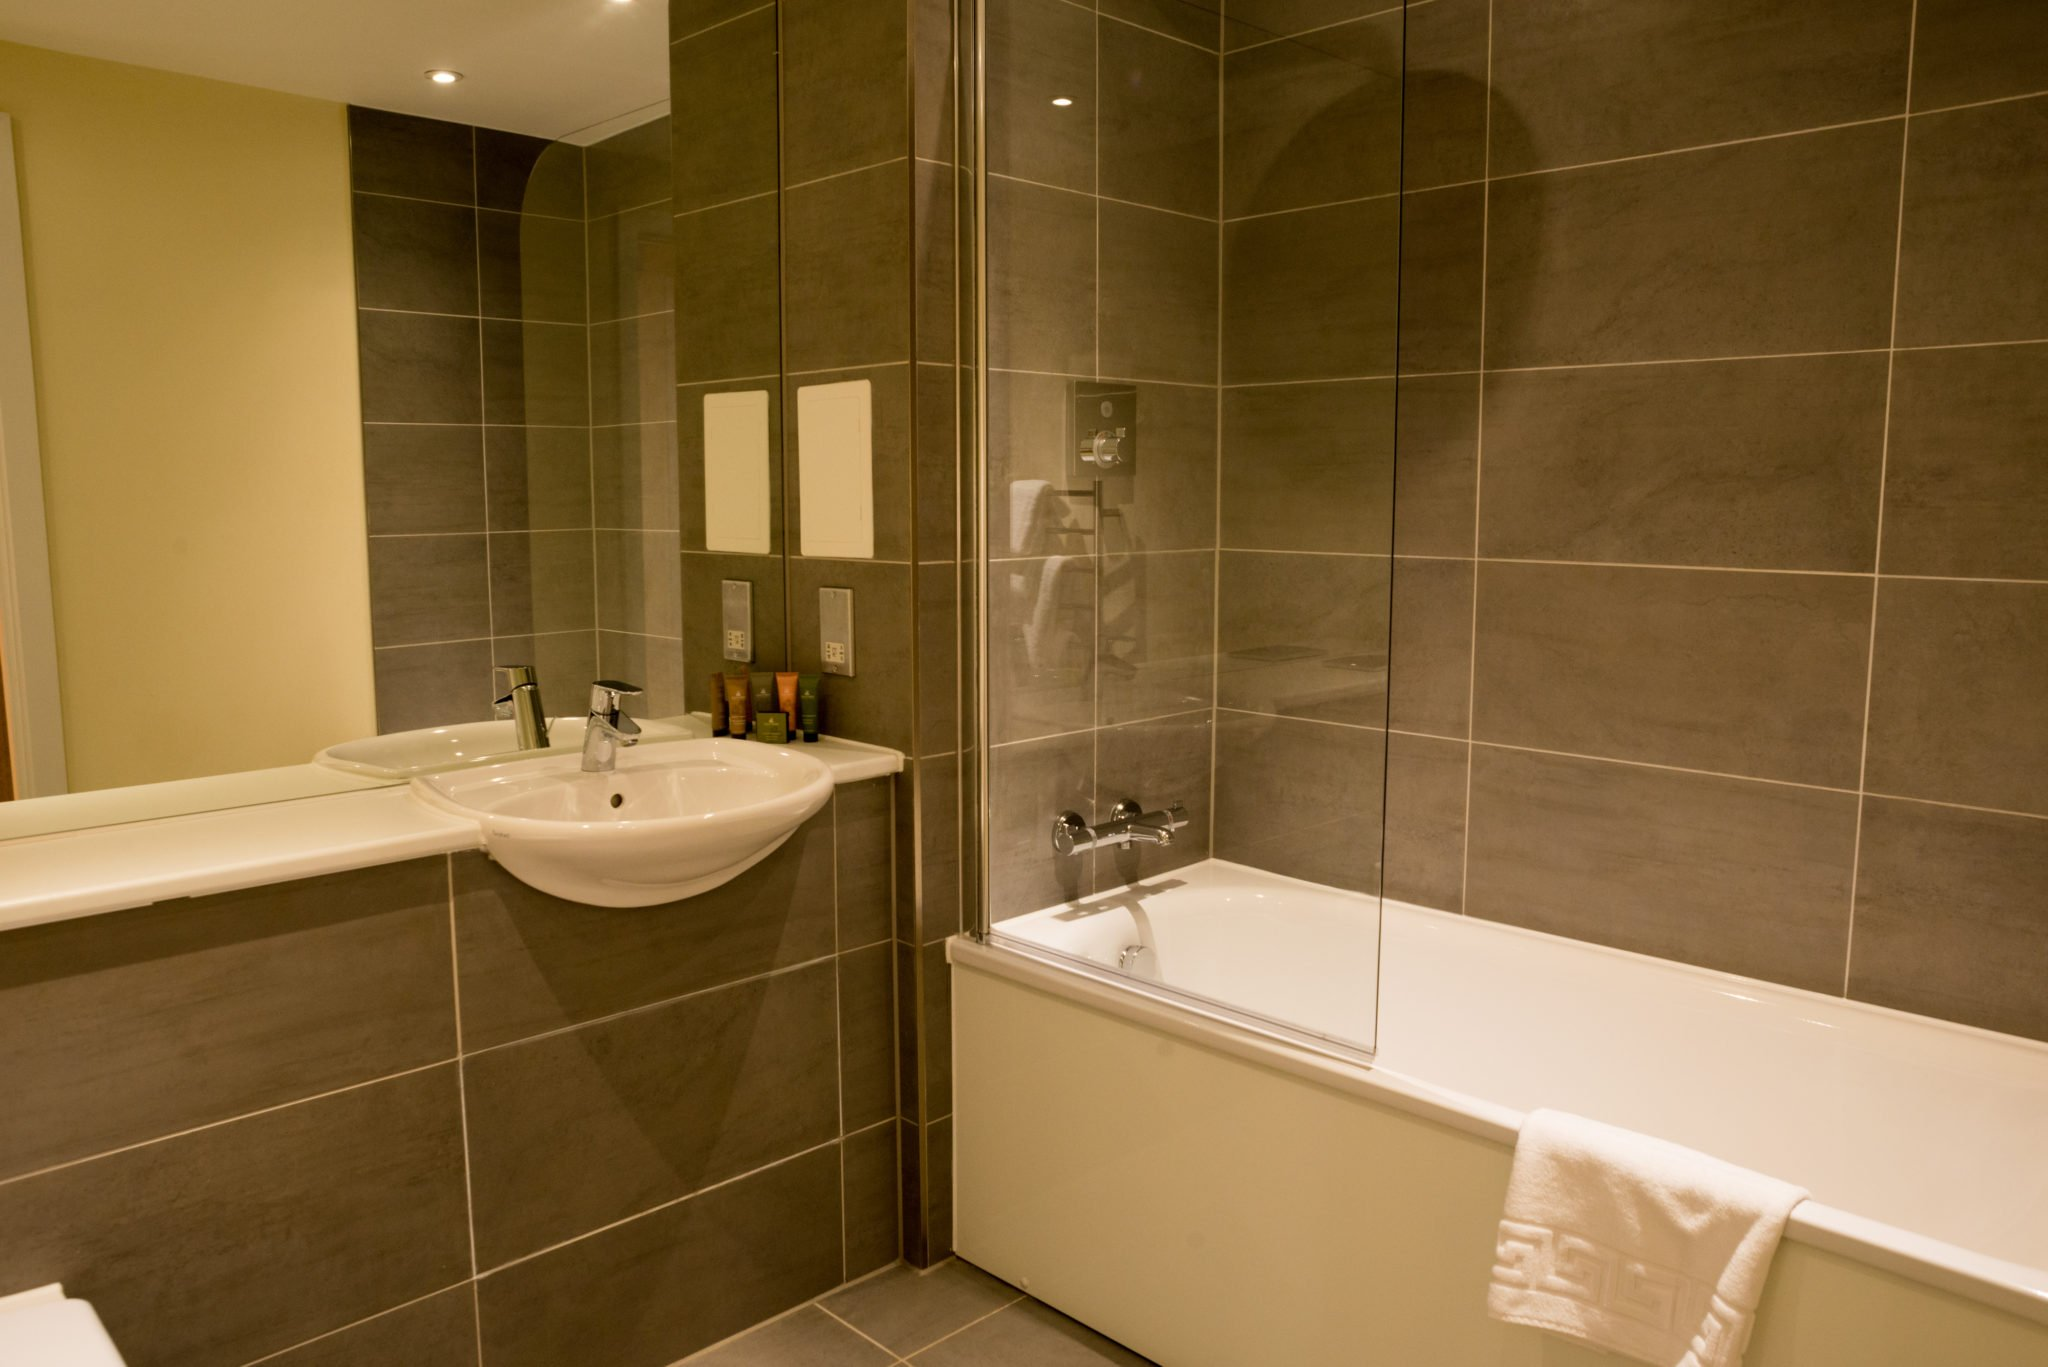 City-Of-London-Serviced-Accommodation-available-now!-Book-Cheap-Short-Let-Arc-House-Apartments-in-the-City-of-London,-with-Free-Wi-Fi,-Fully-equipped-kitchen-&-a-Welcome-Basket!-Book-Now!-Call:-0208-6913920